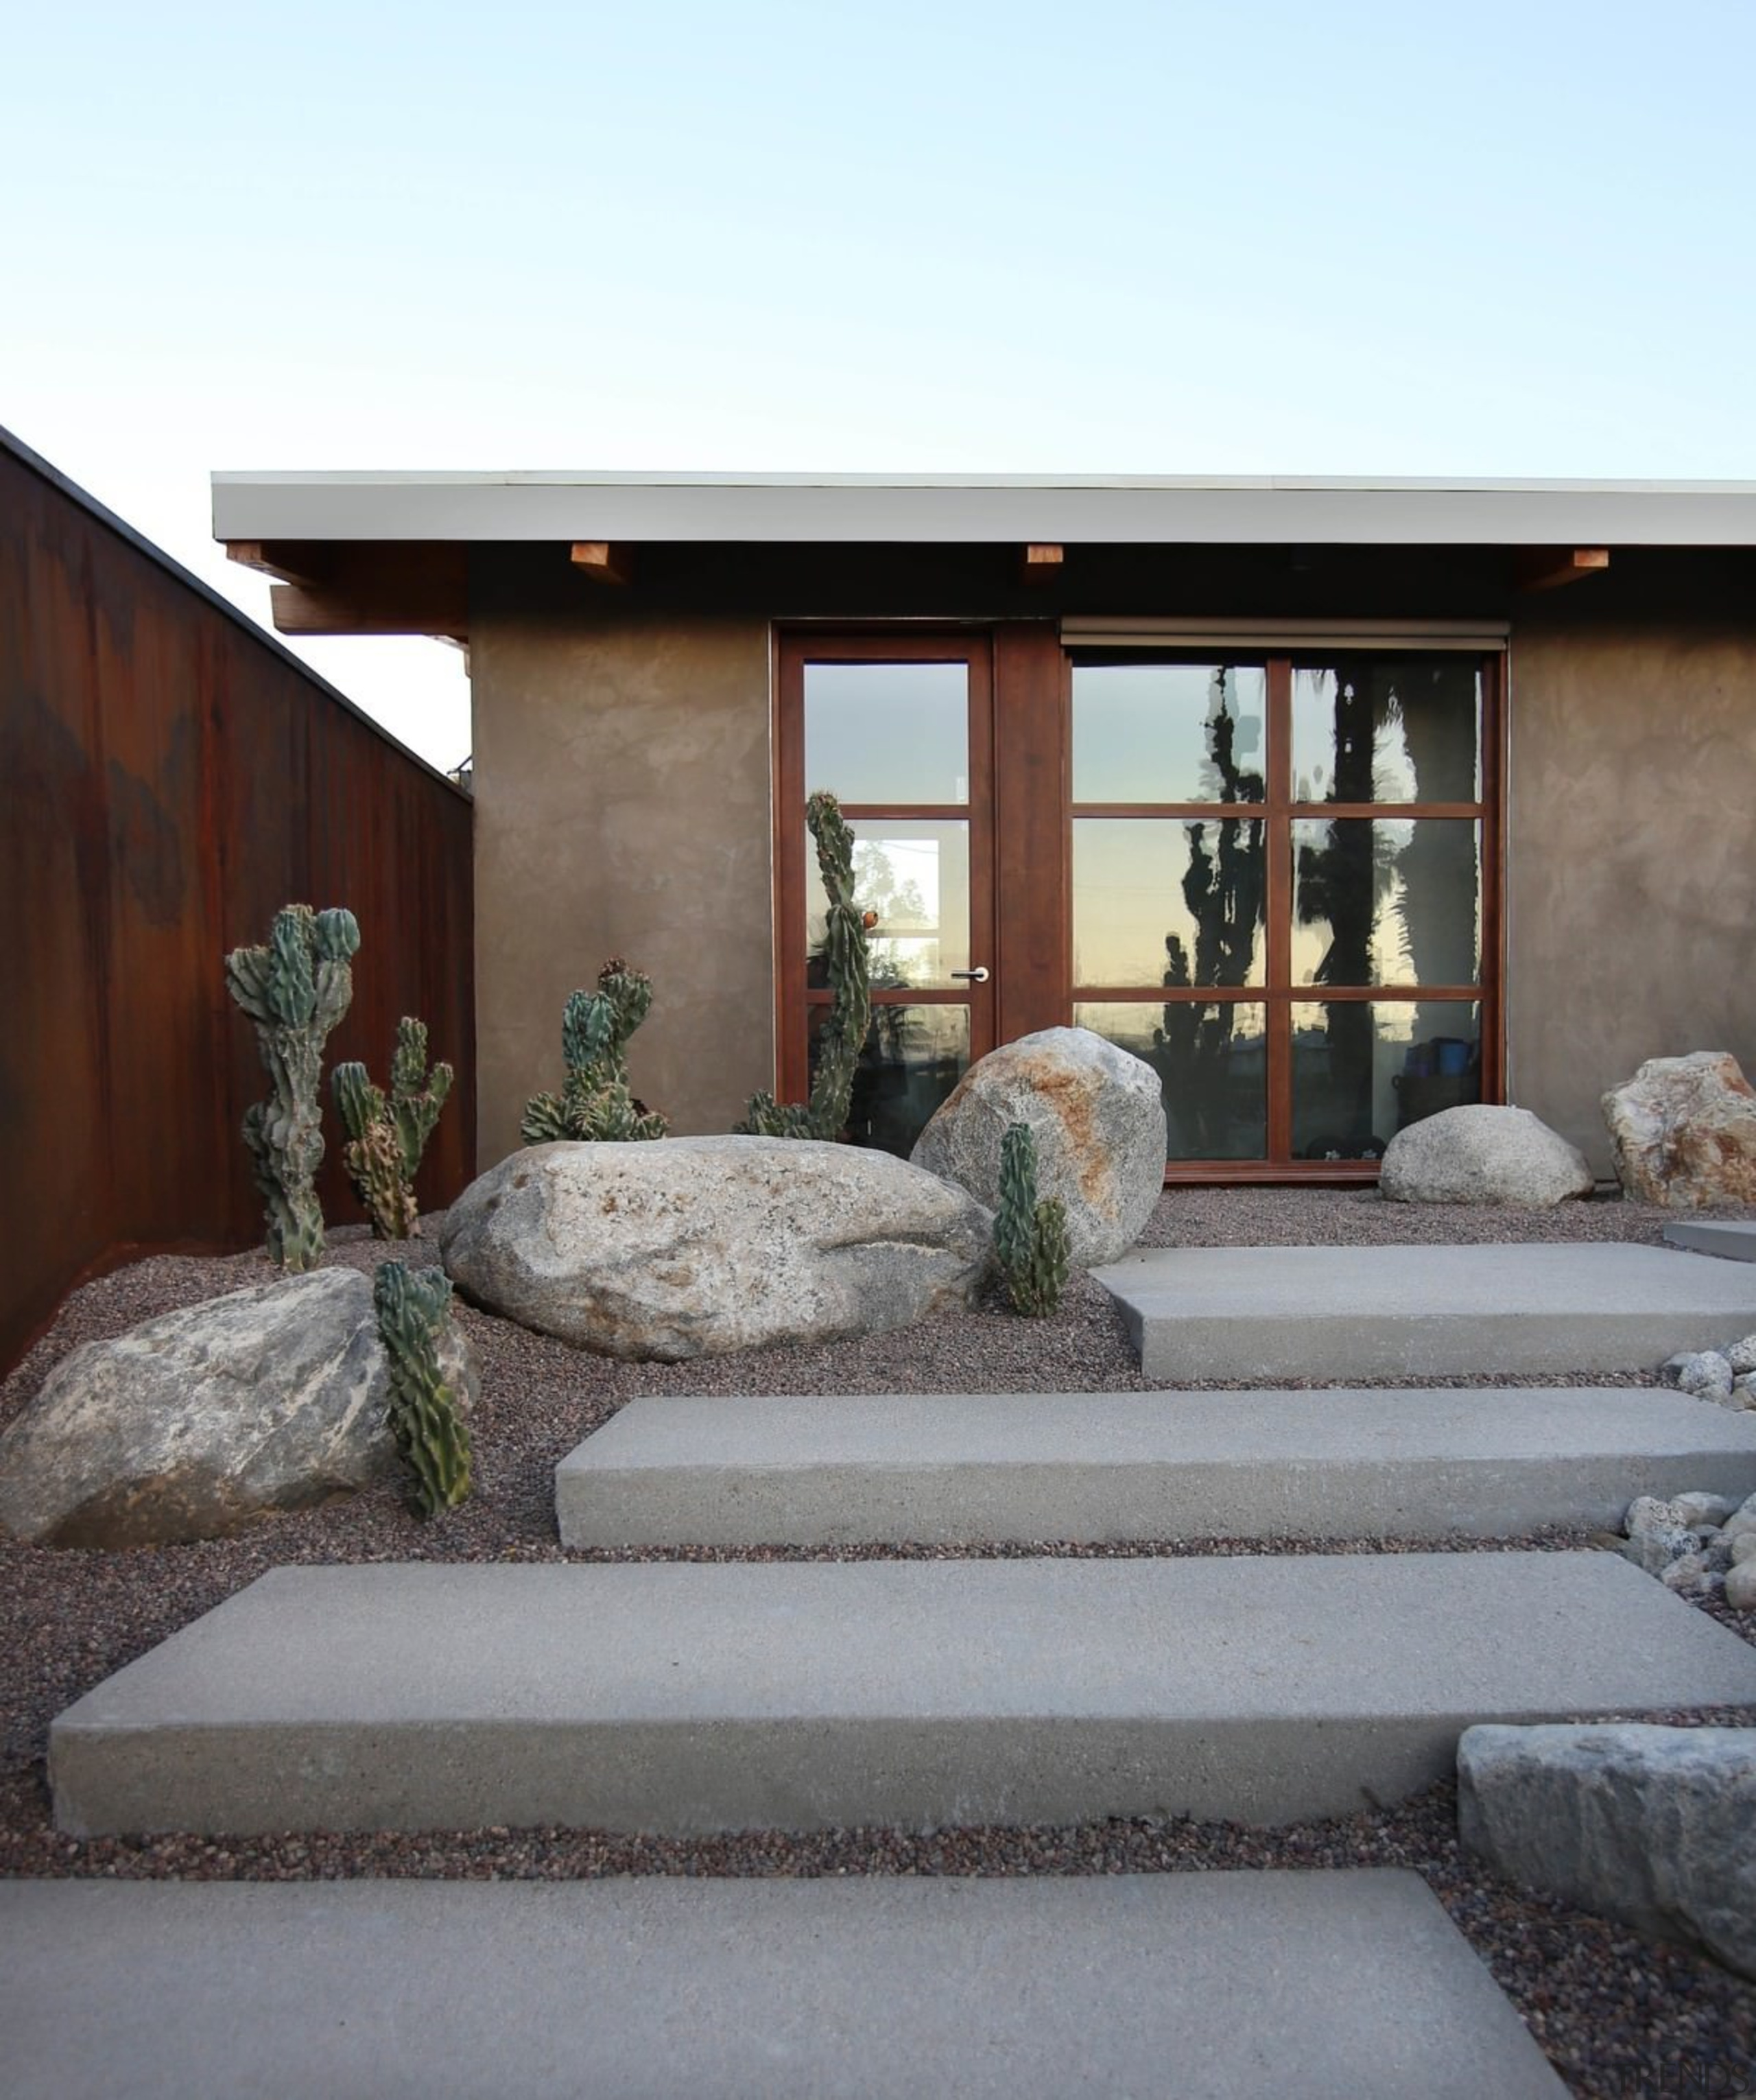 The concrete steps leading up to the home architecture, home, house, window, gray